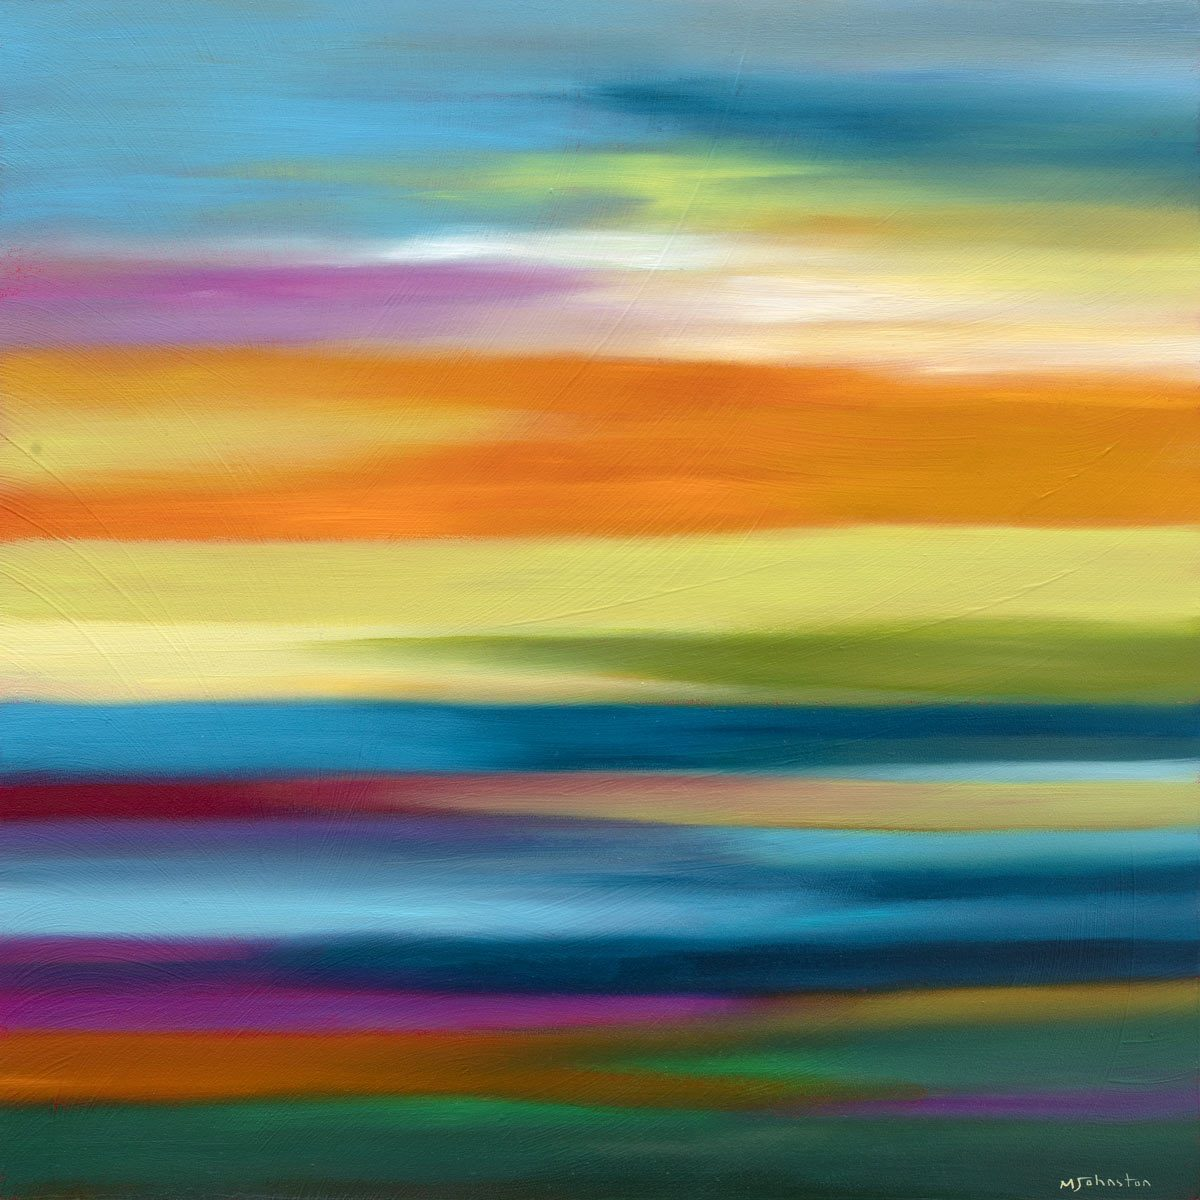 A Sea of colour - Original Mary Johnston Original